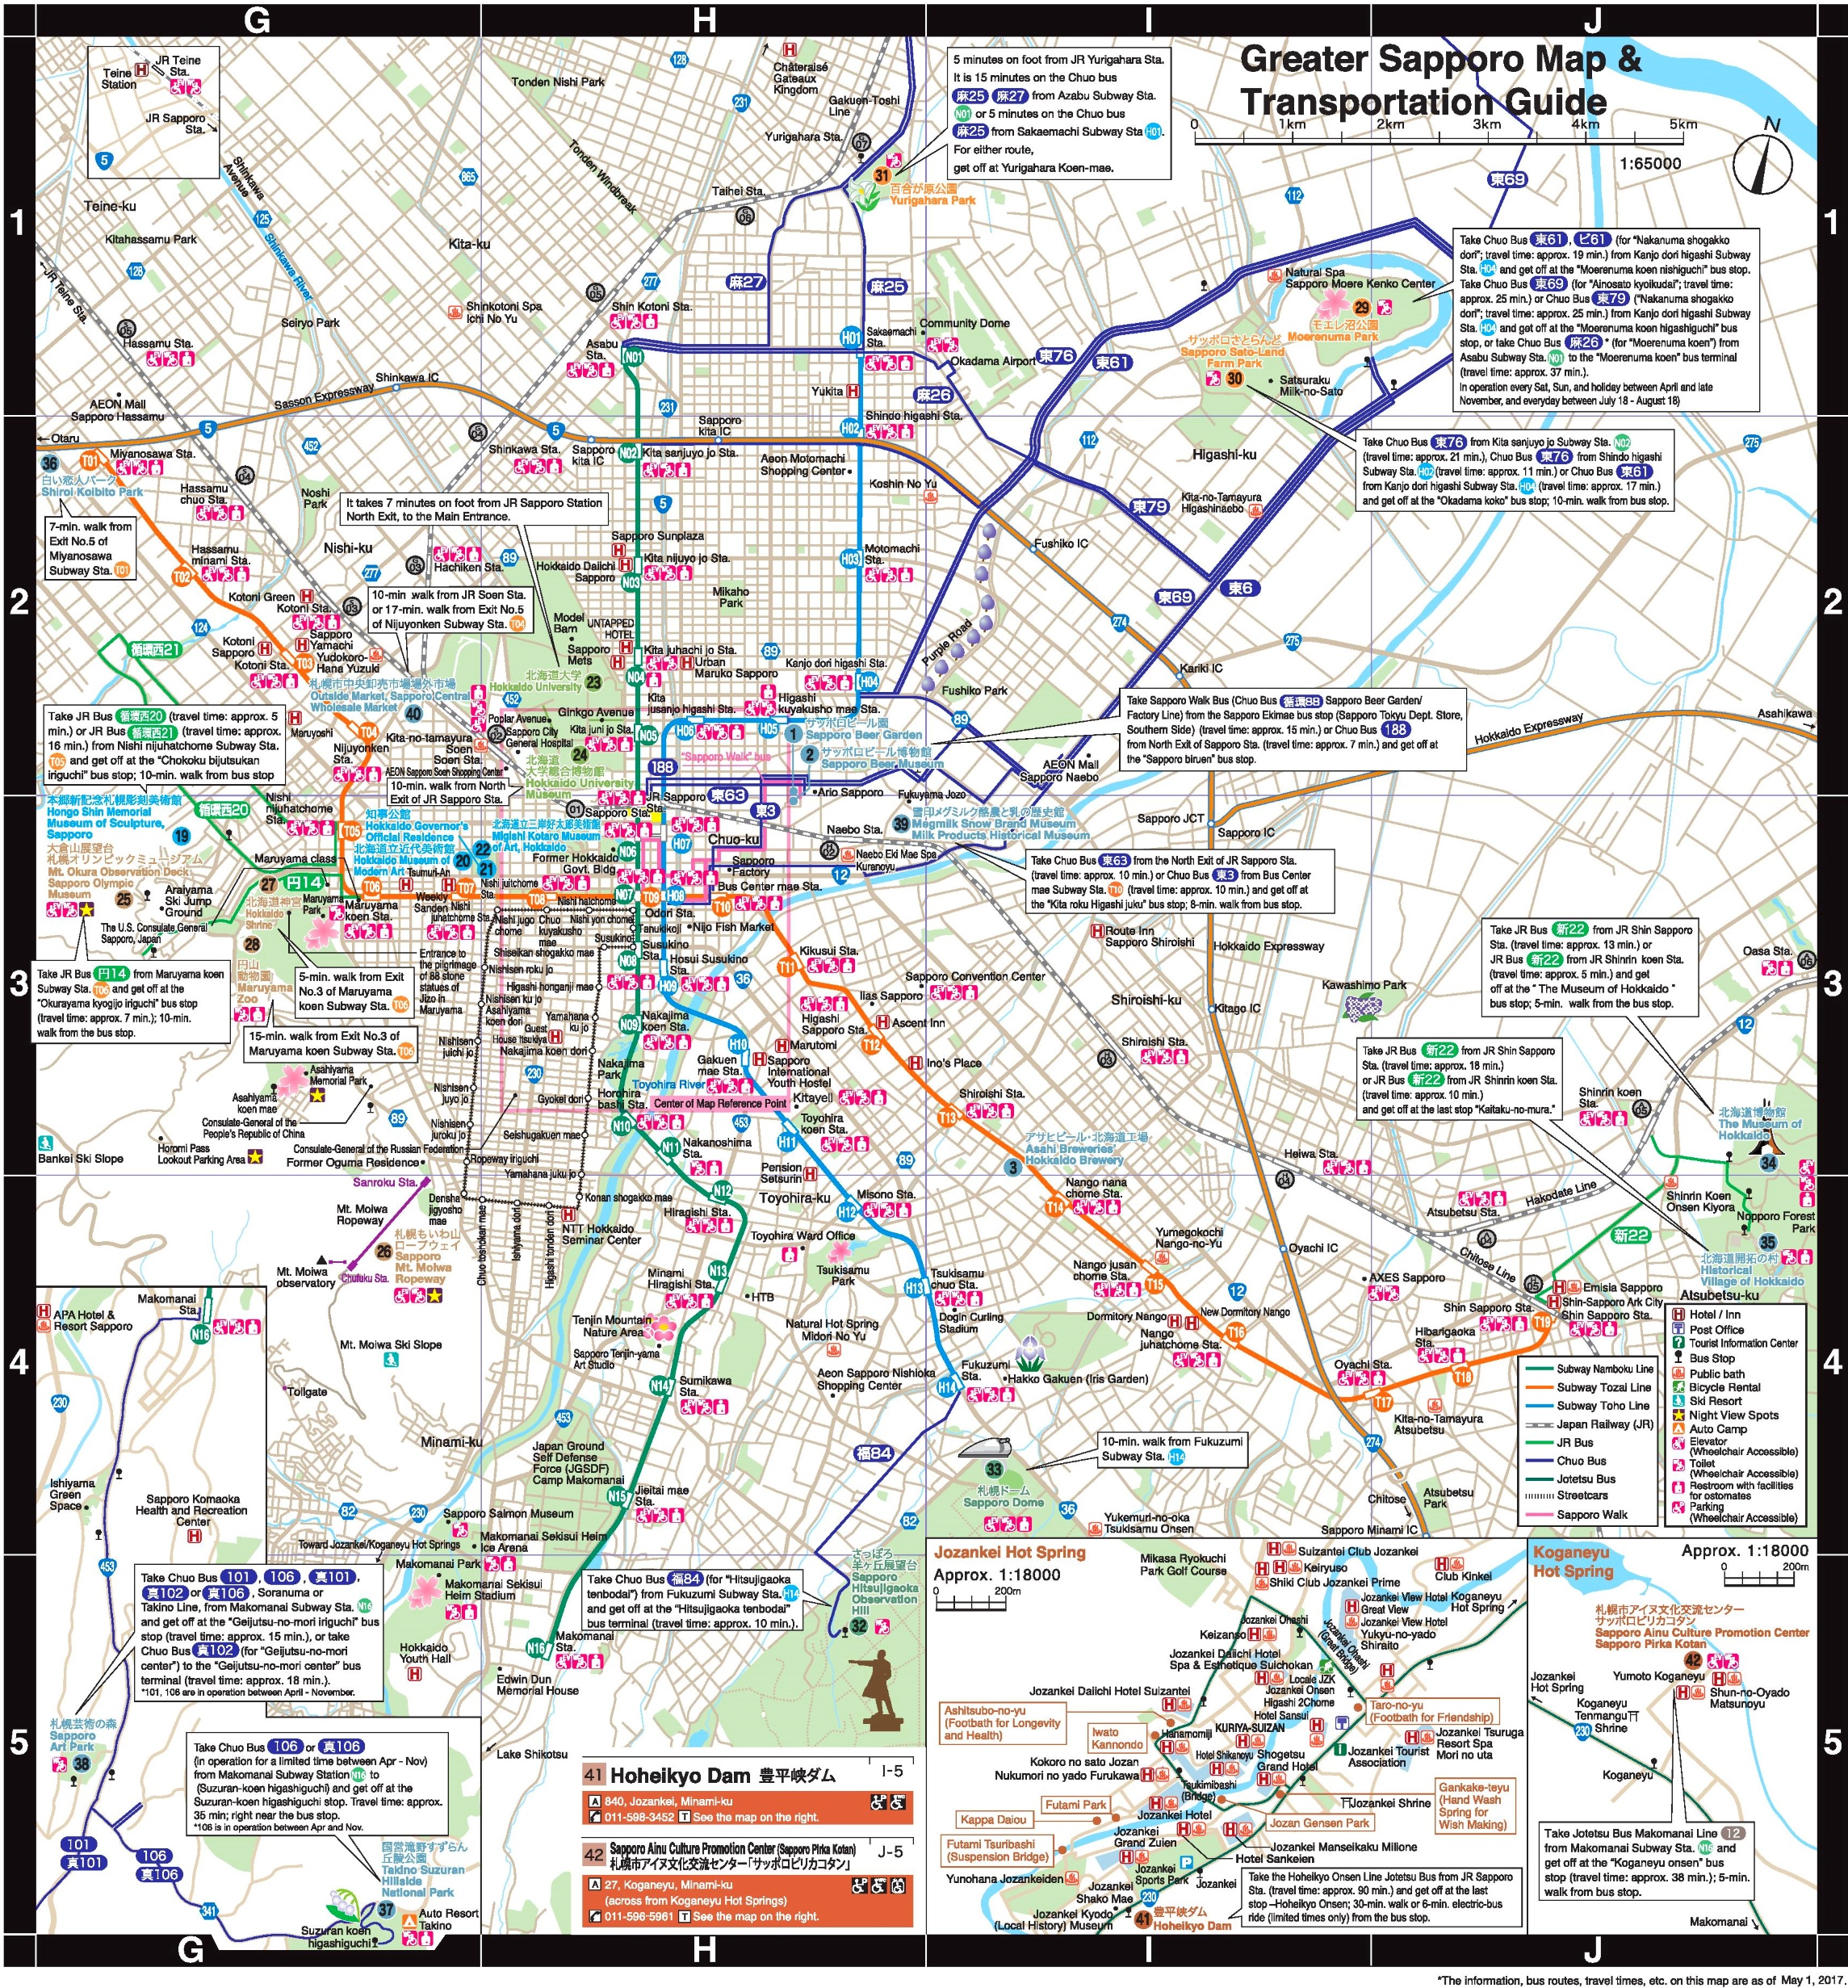 Greater Sapporo Map